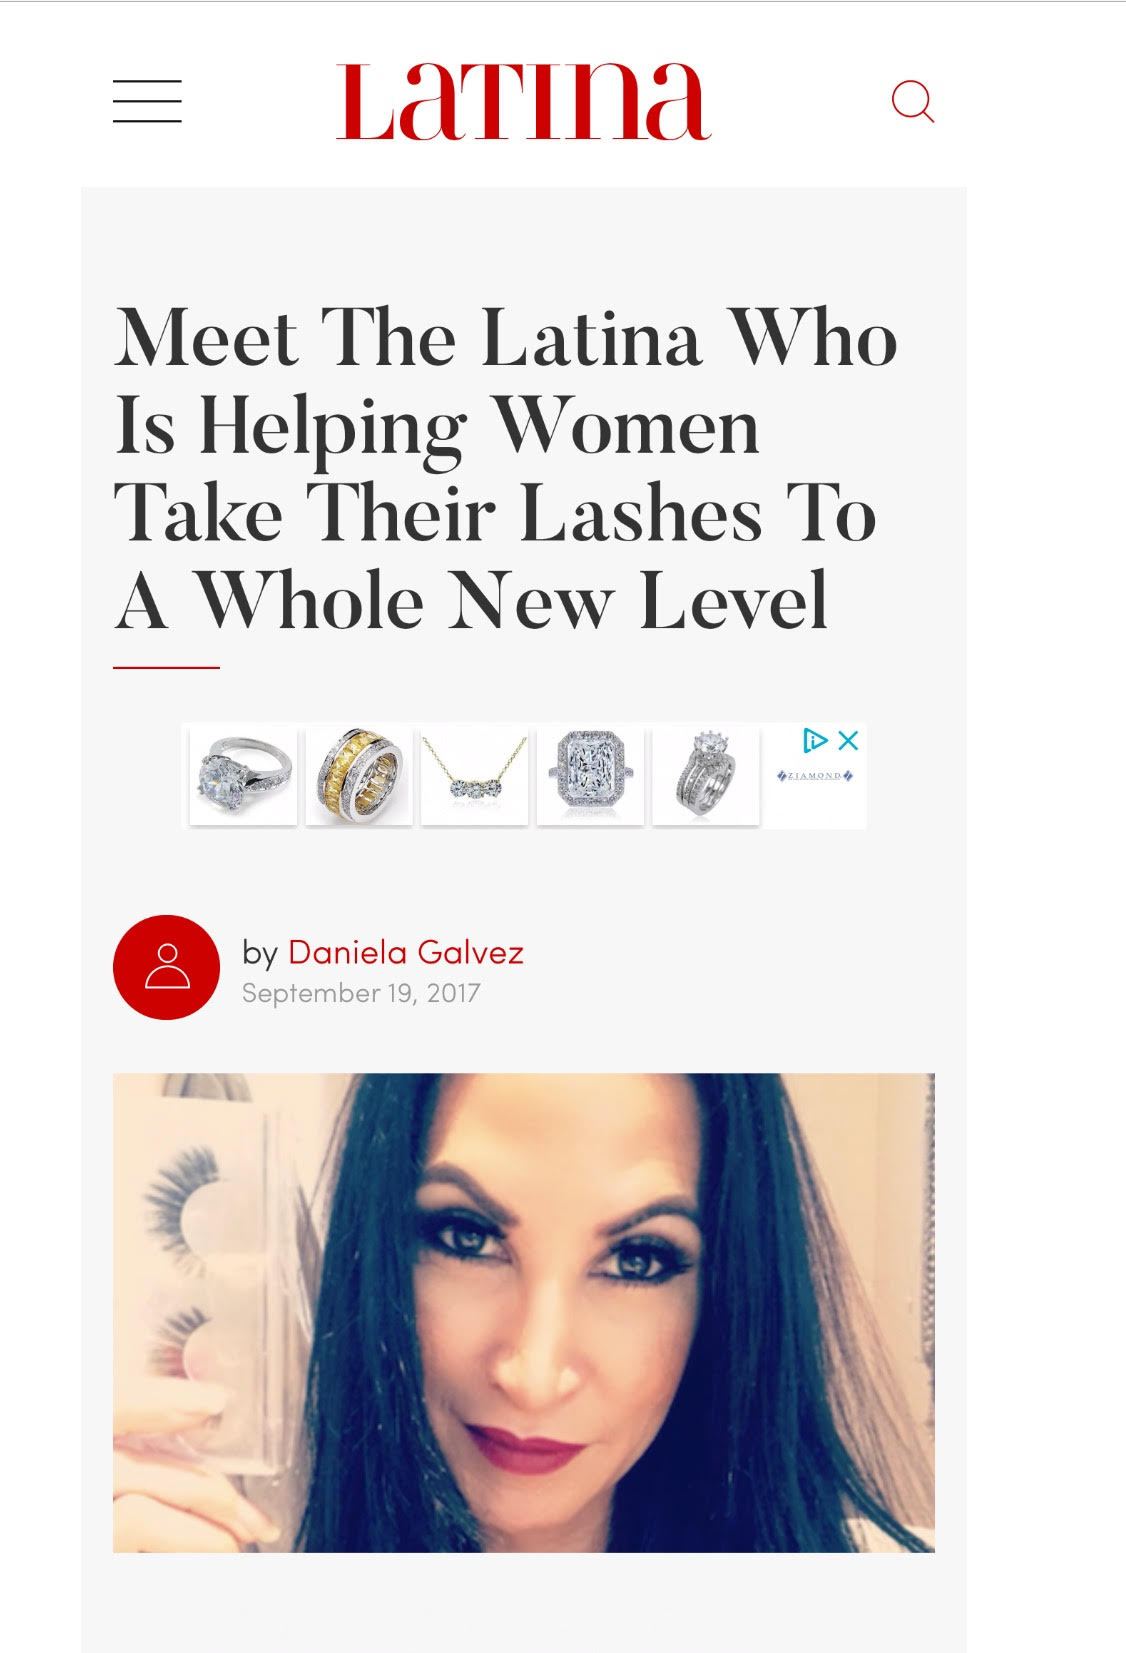 http://www.latina.com/beauty/makeup/meet-latina-who-helping-women-take-their-lashes-whole-new-level